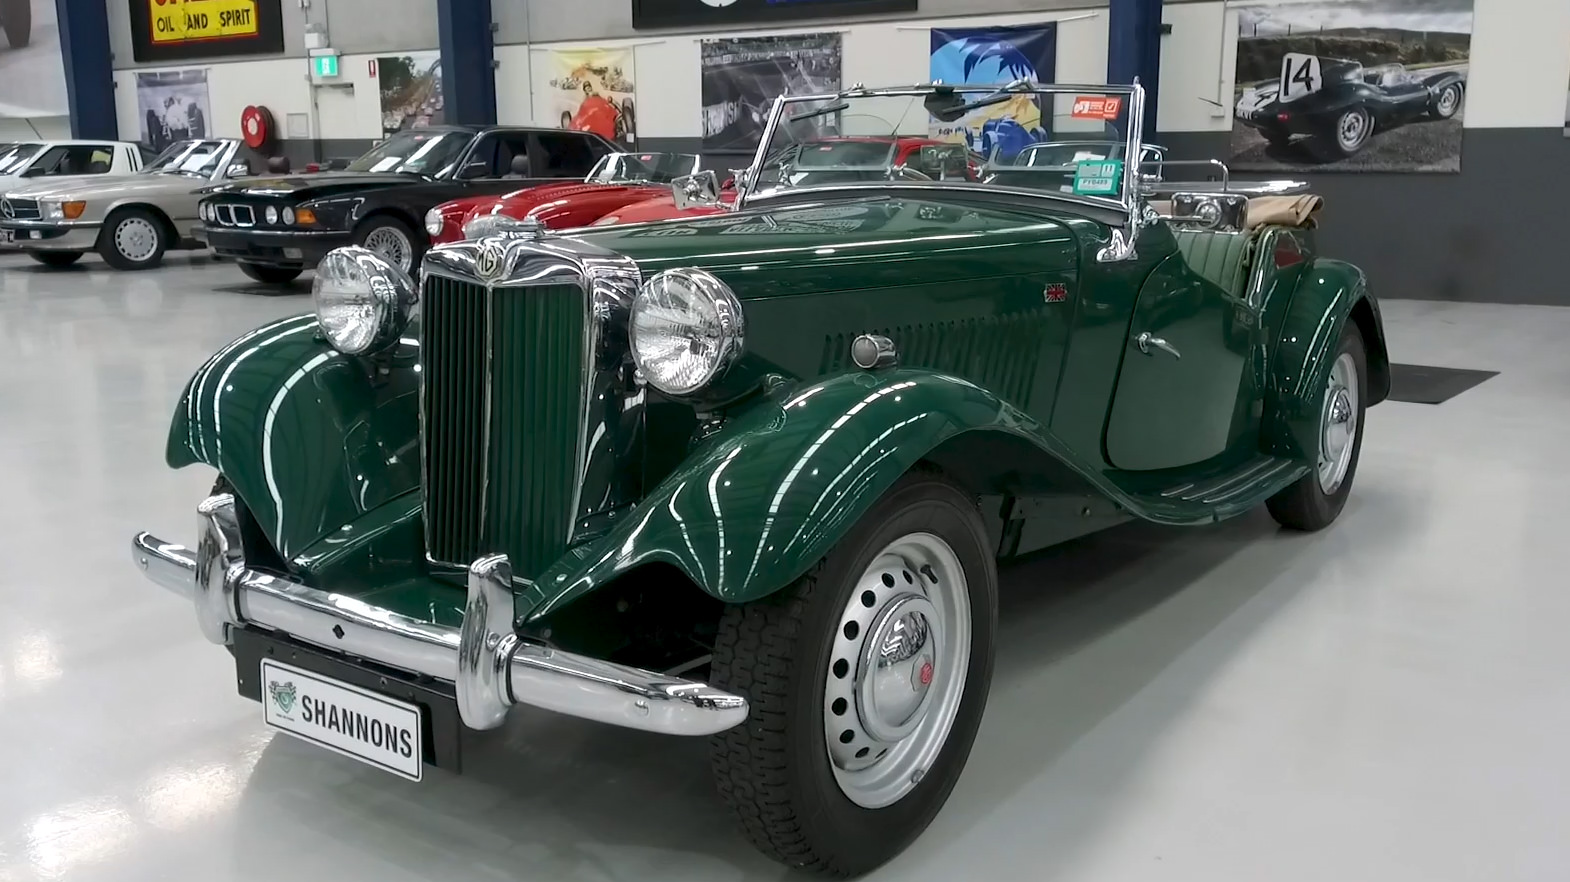 1953 MG TD 1250 Roadster - 2021 Shannons Autumn Timed Online Auction